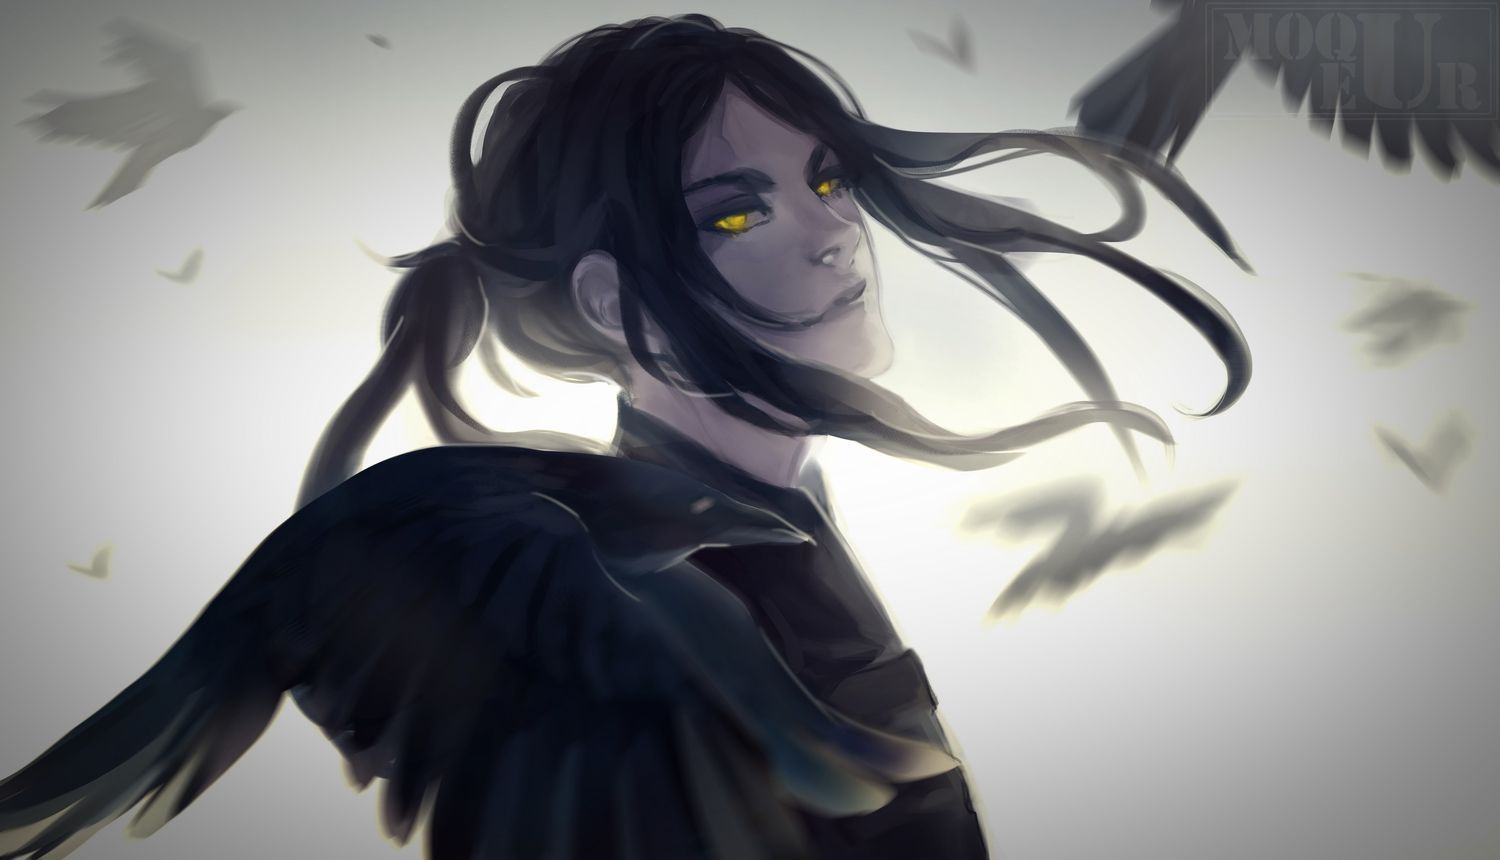 All Male Animal Bird Black Hair Long Hair Male Original Ponytail Tagme Artist Watermark Yellow Eyes Black Hair Anime Guy Guys With Black Hair Anime Boy